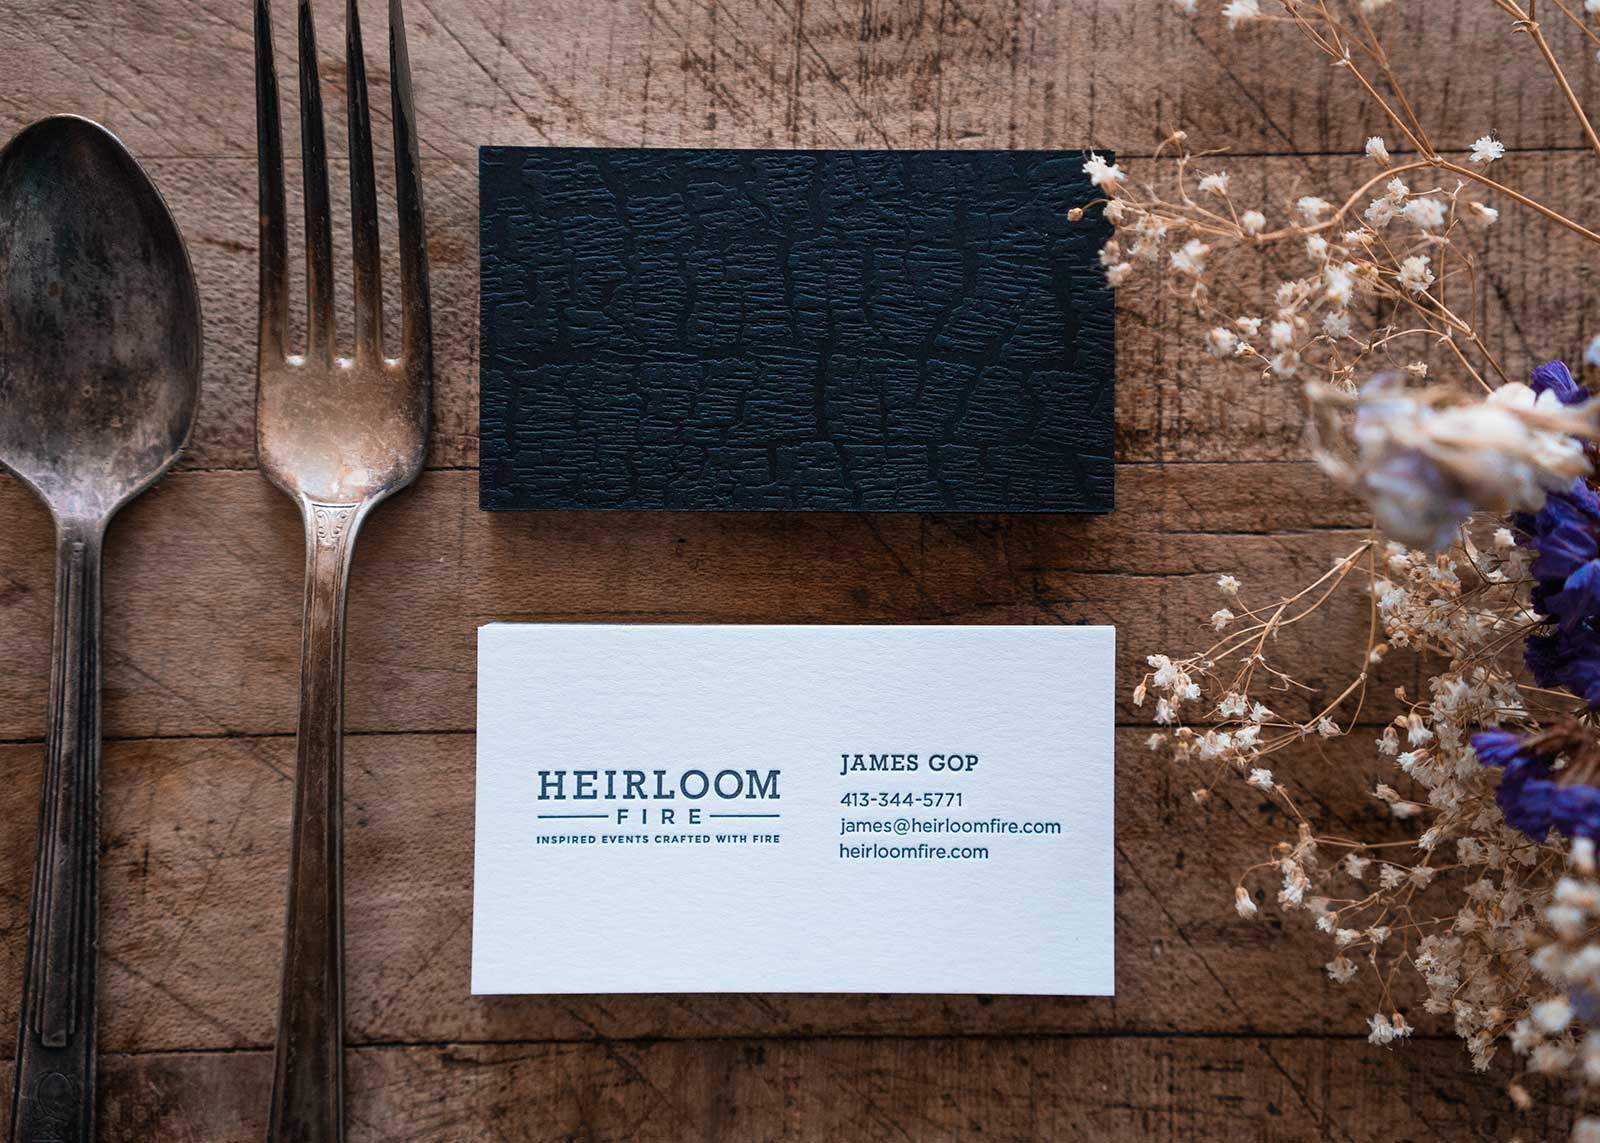 Business card design for Heirloom Fire